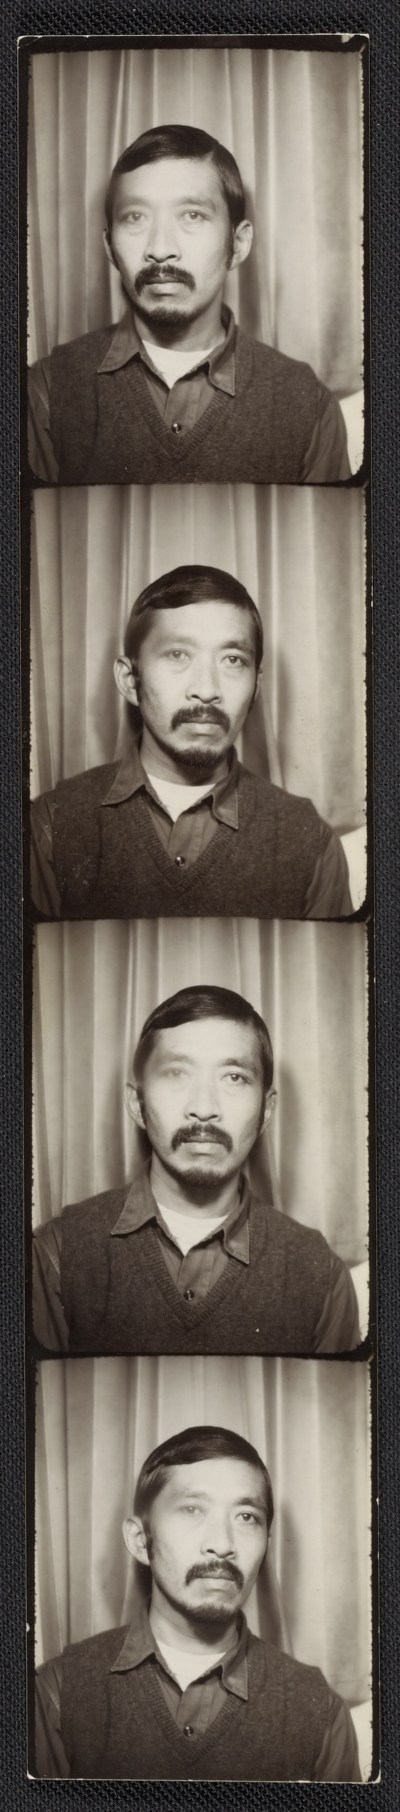 [Ray Yoshida photo strip]